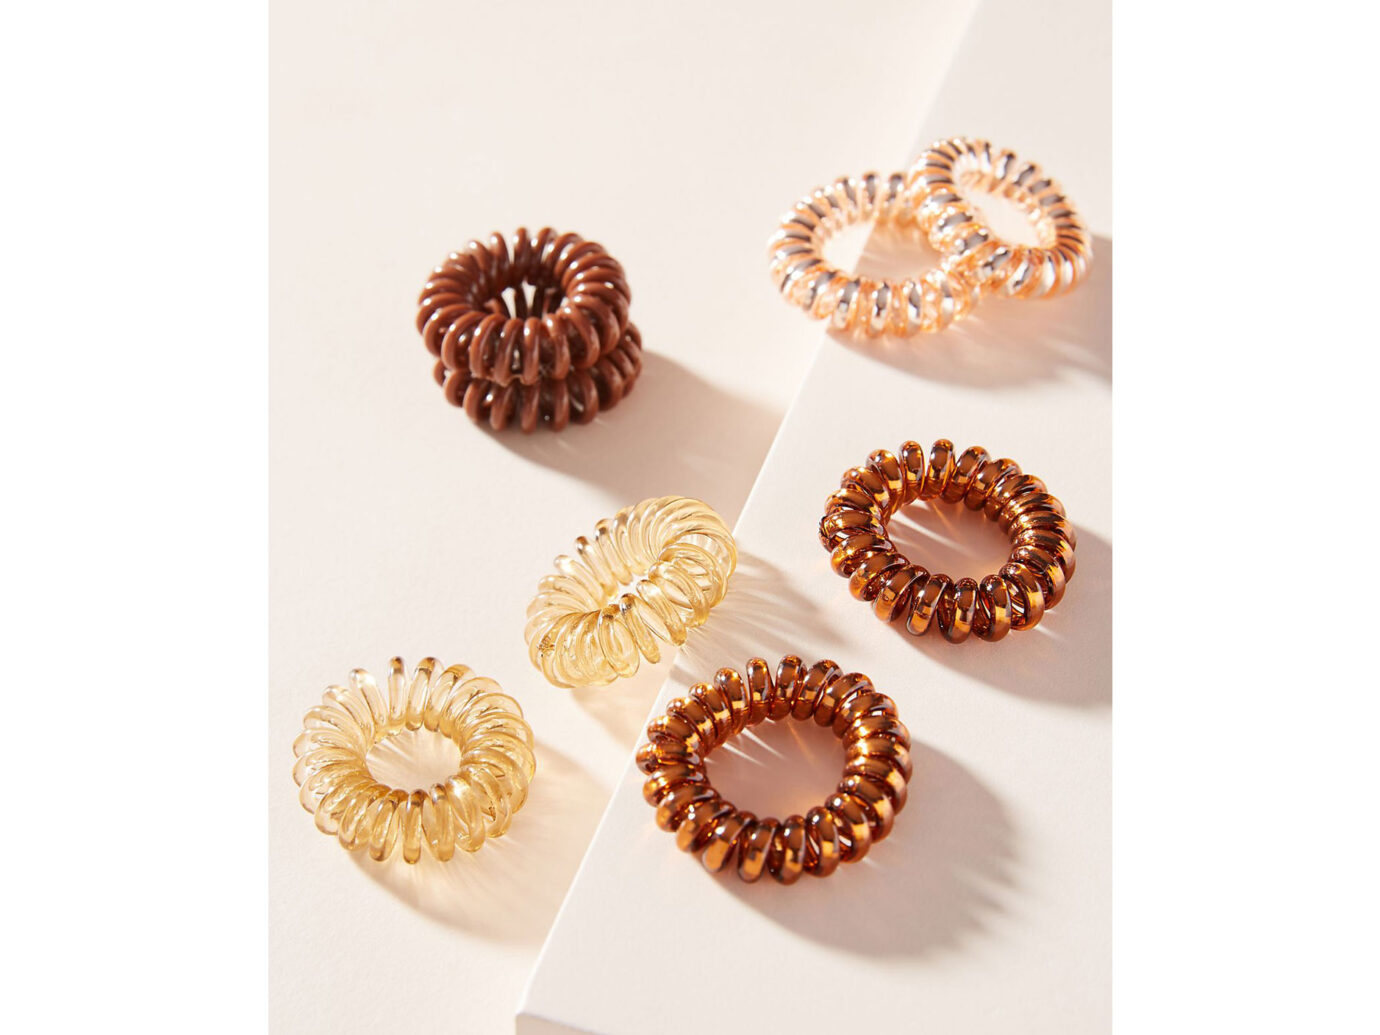 Anthropologie Mini Coiled Hair Tie Set